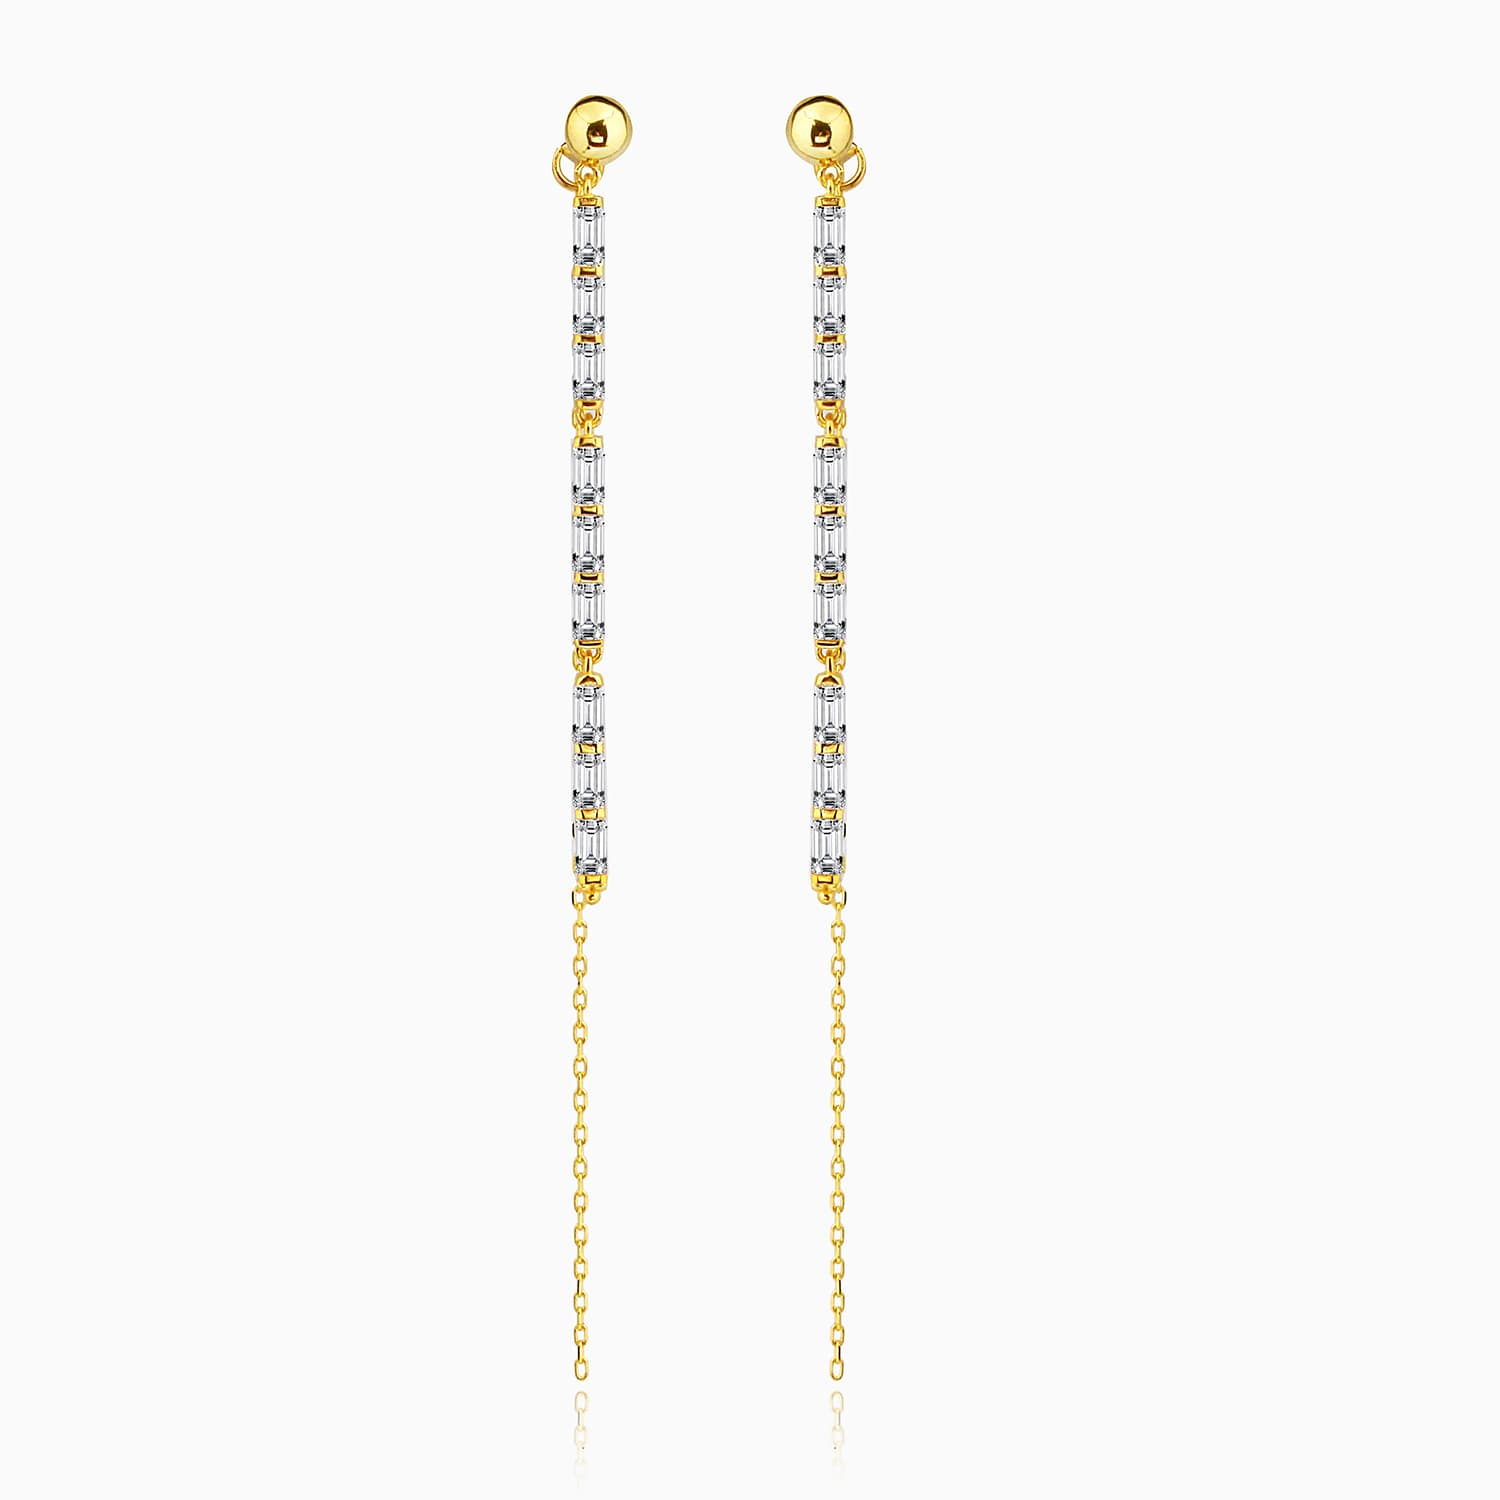 Gold plated minimal dangly earrings models